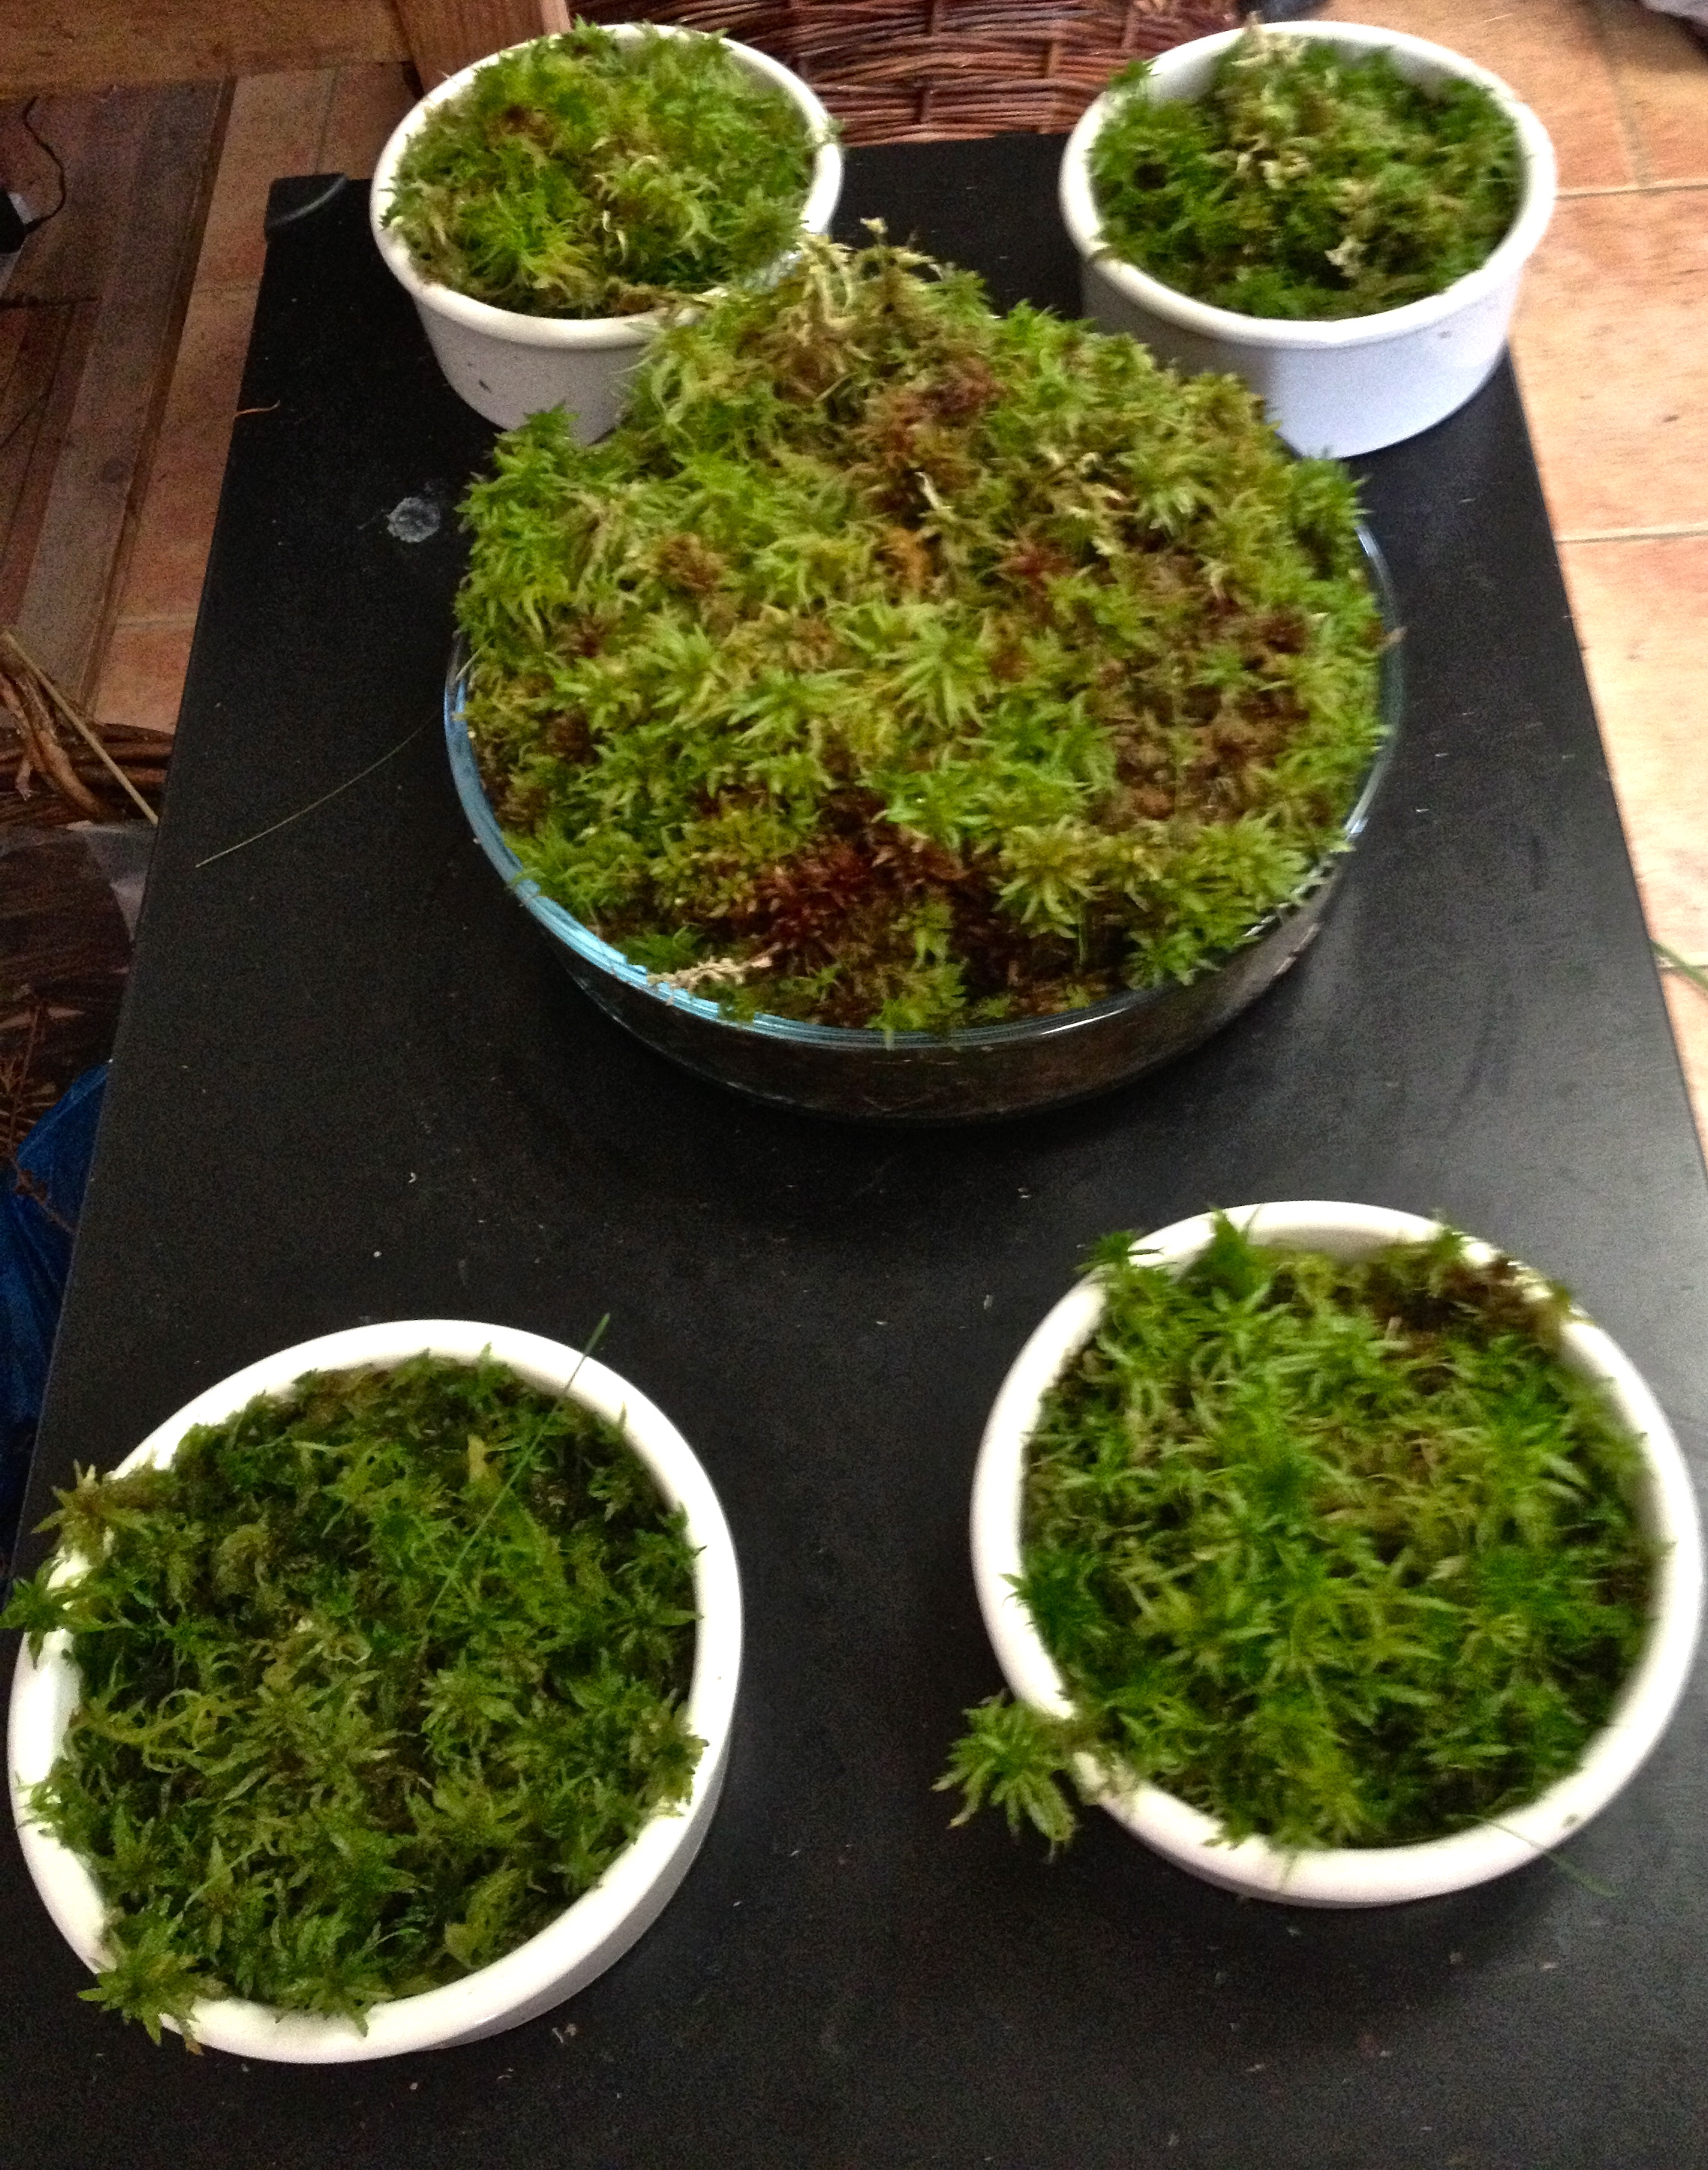 Different types of sphagnum moss from a bog in Ireland